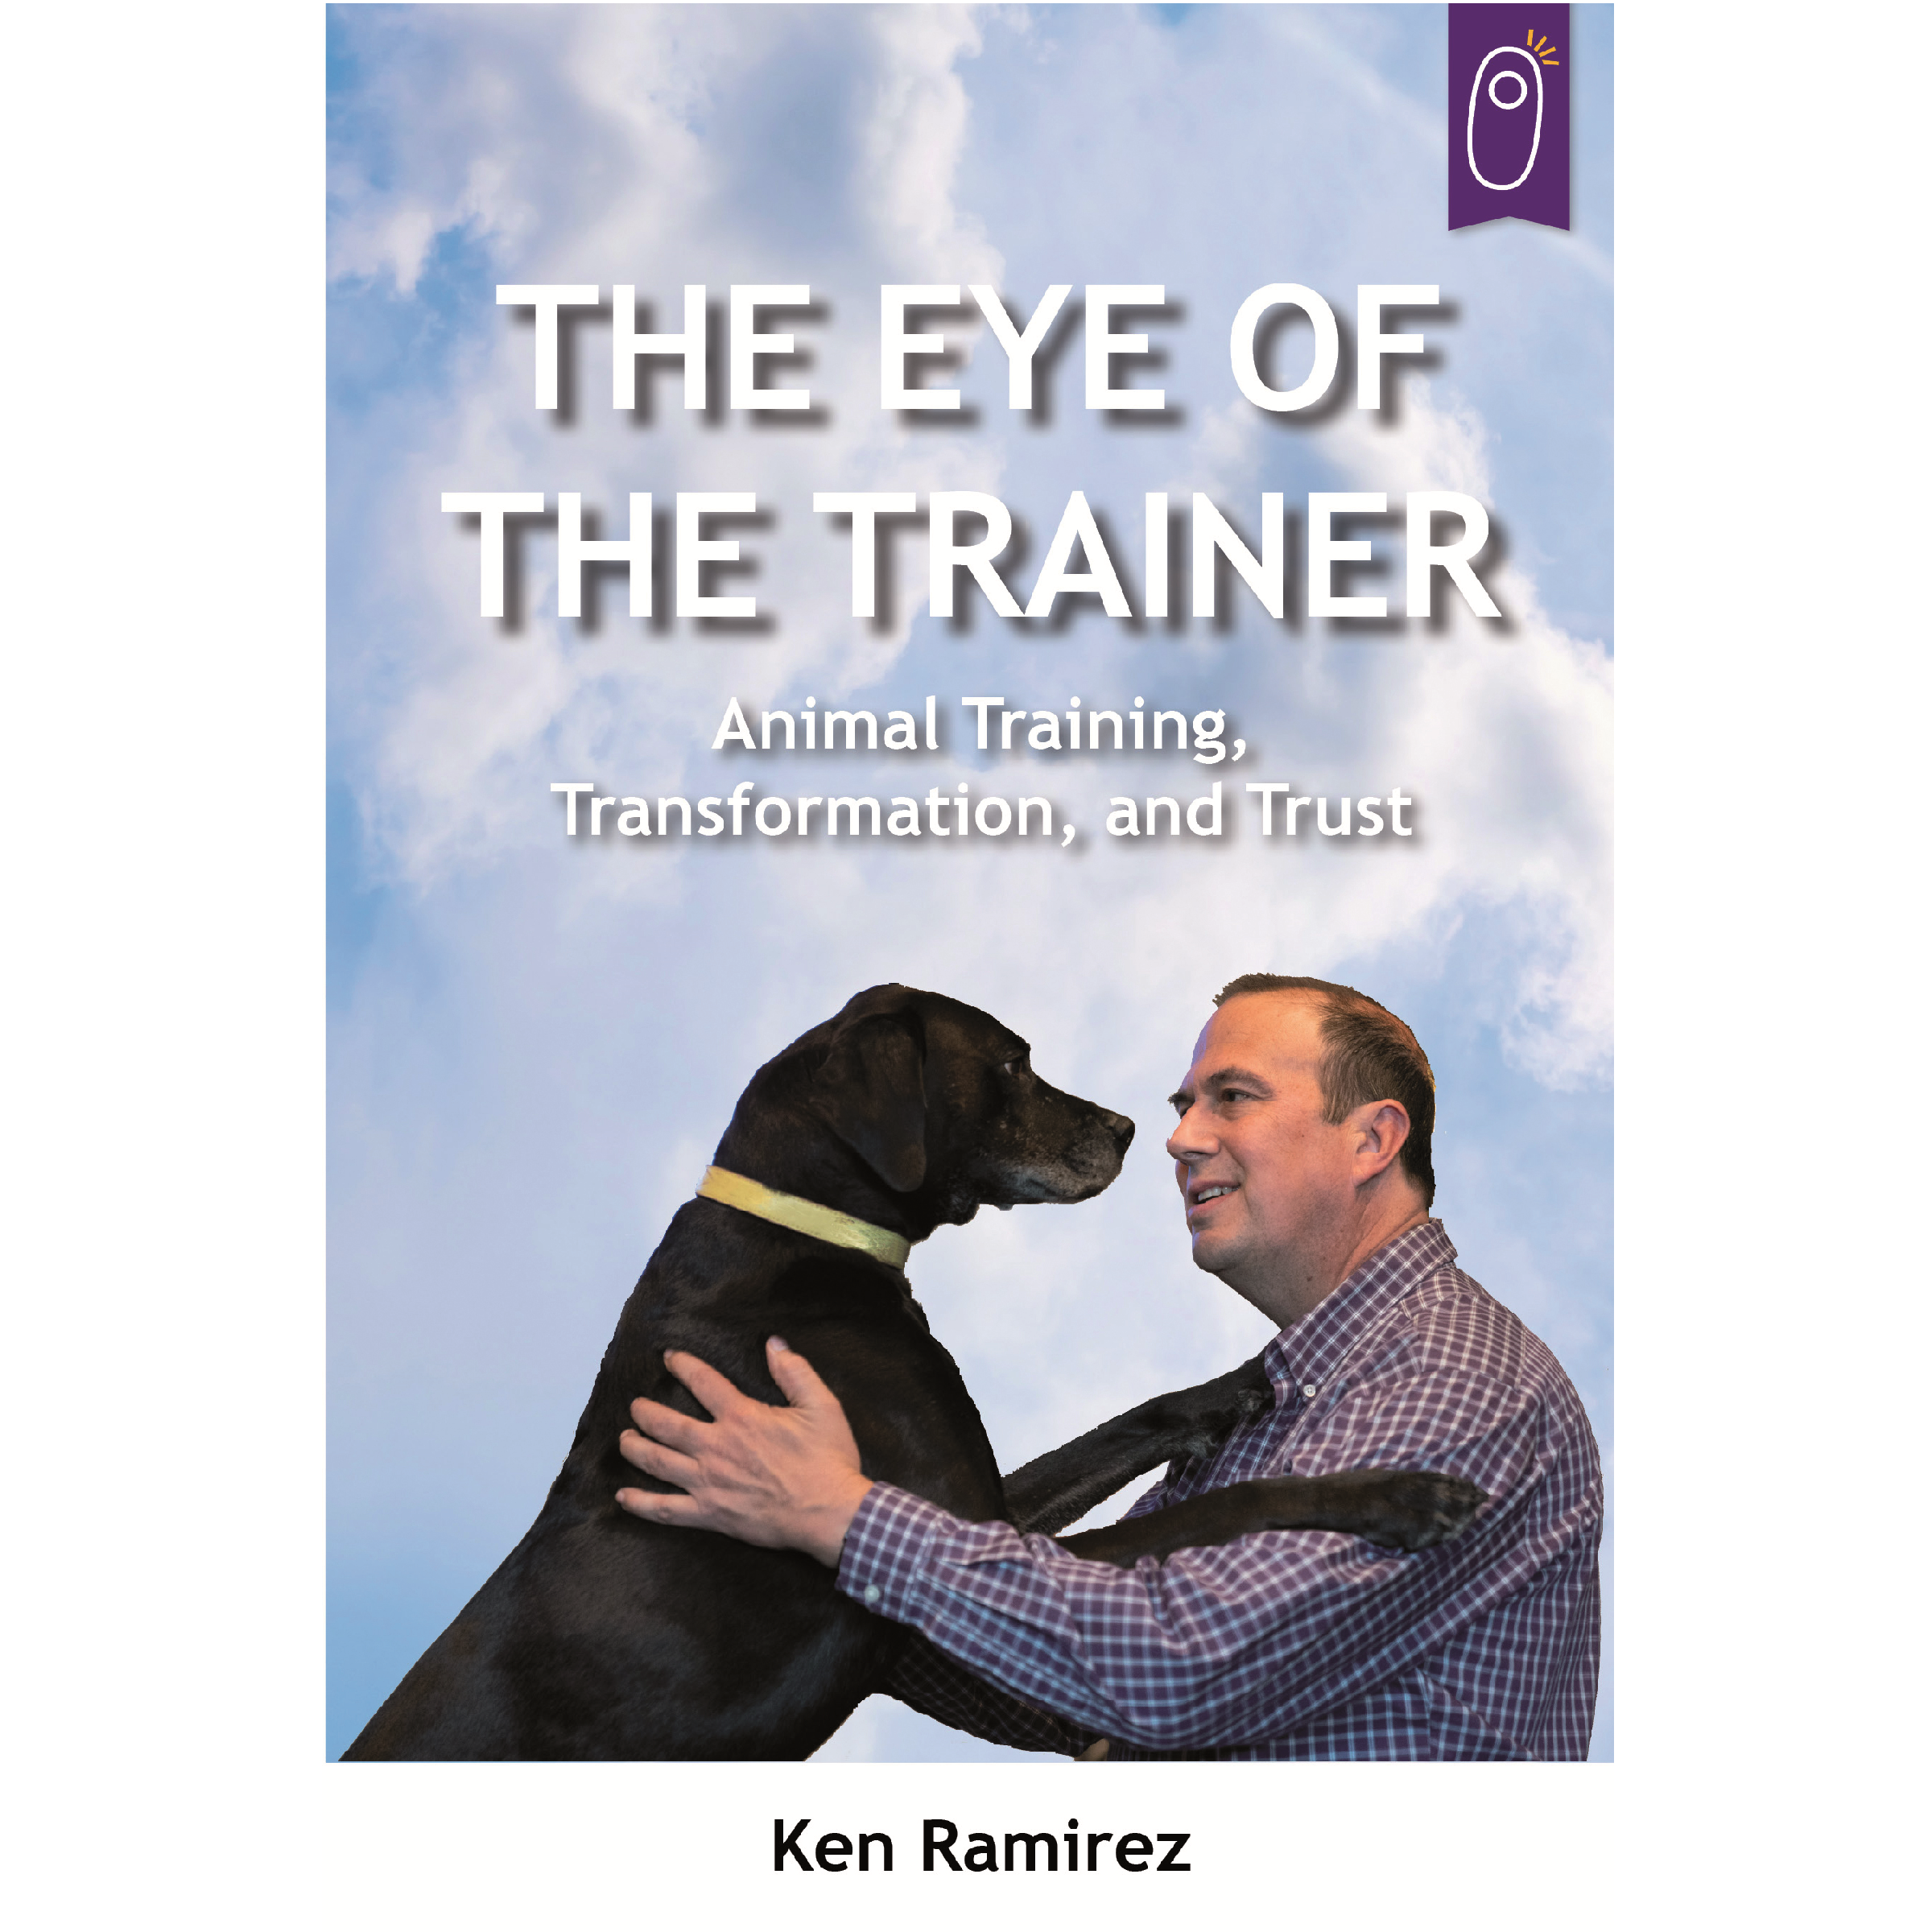 The Eye of the Trainer